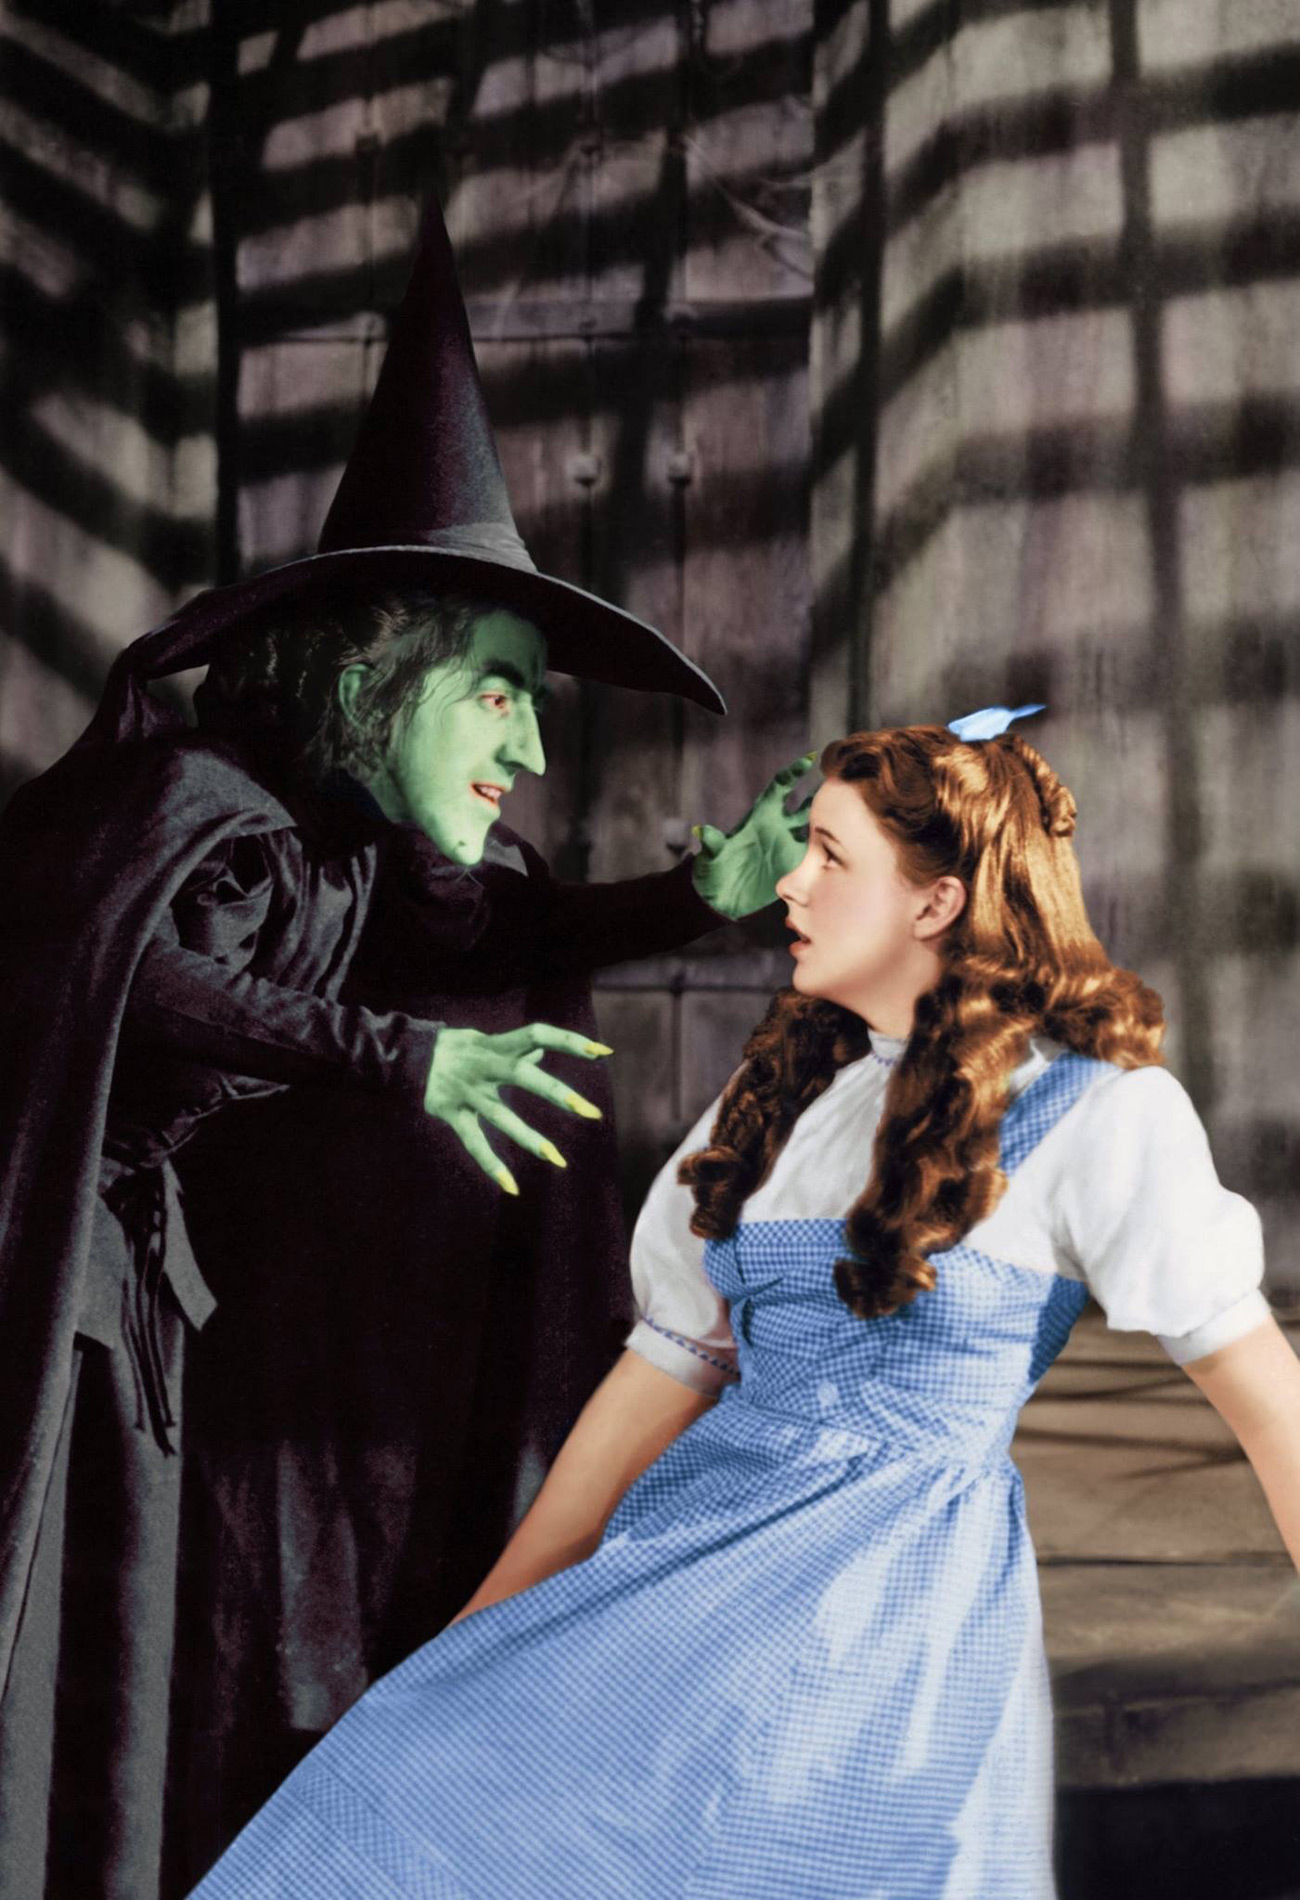 The Wicked Witch of the West looms over Dorothy